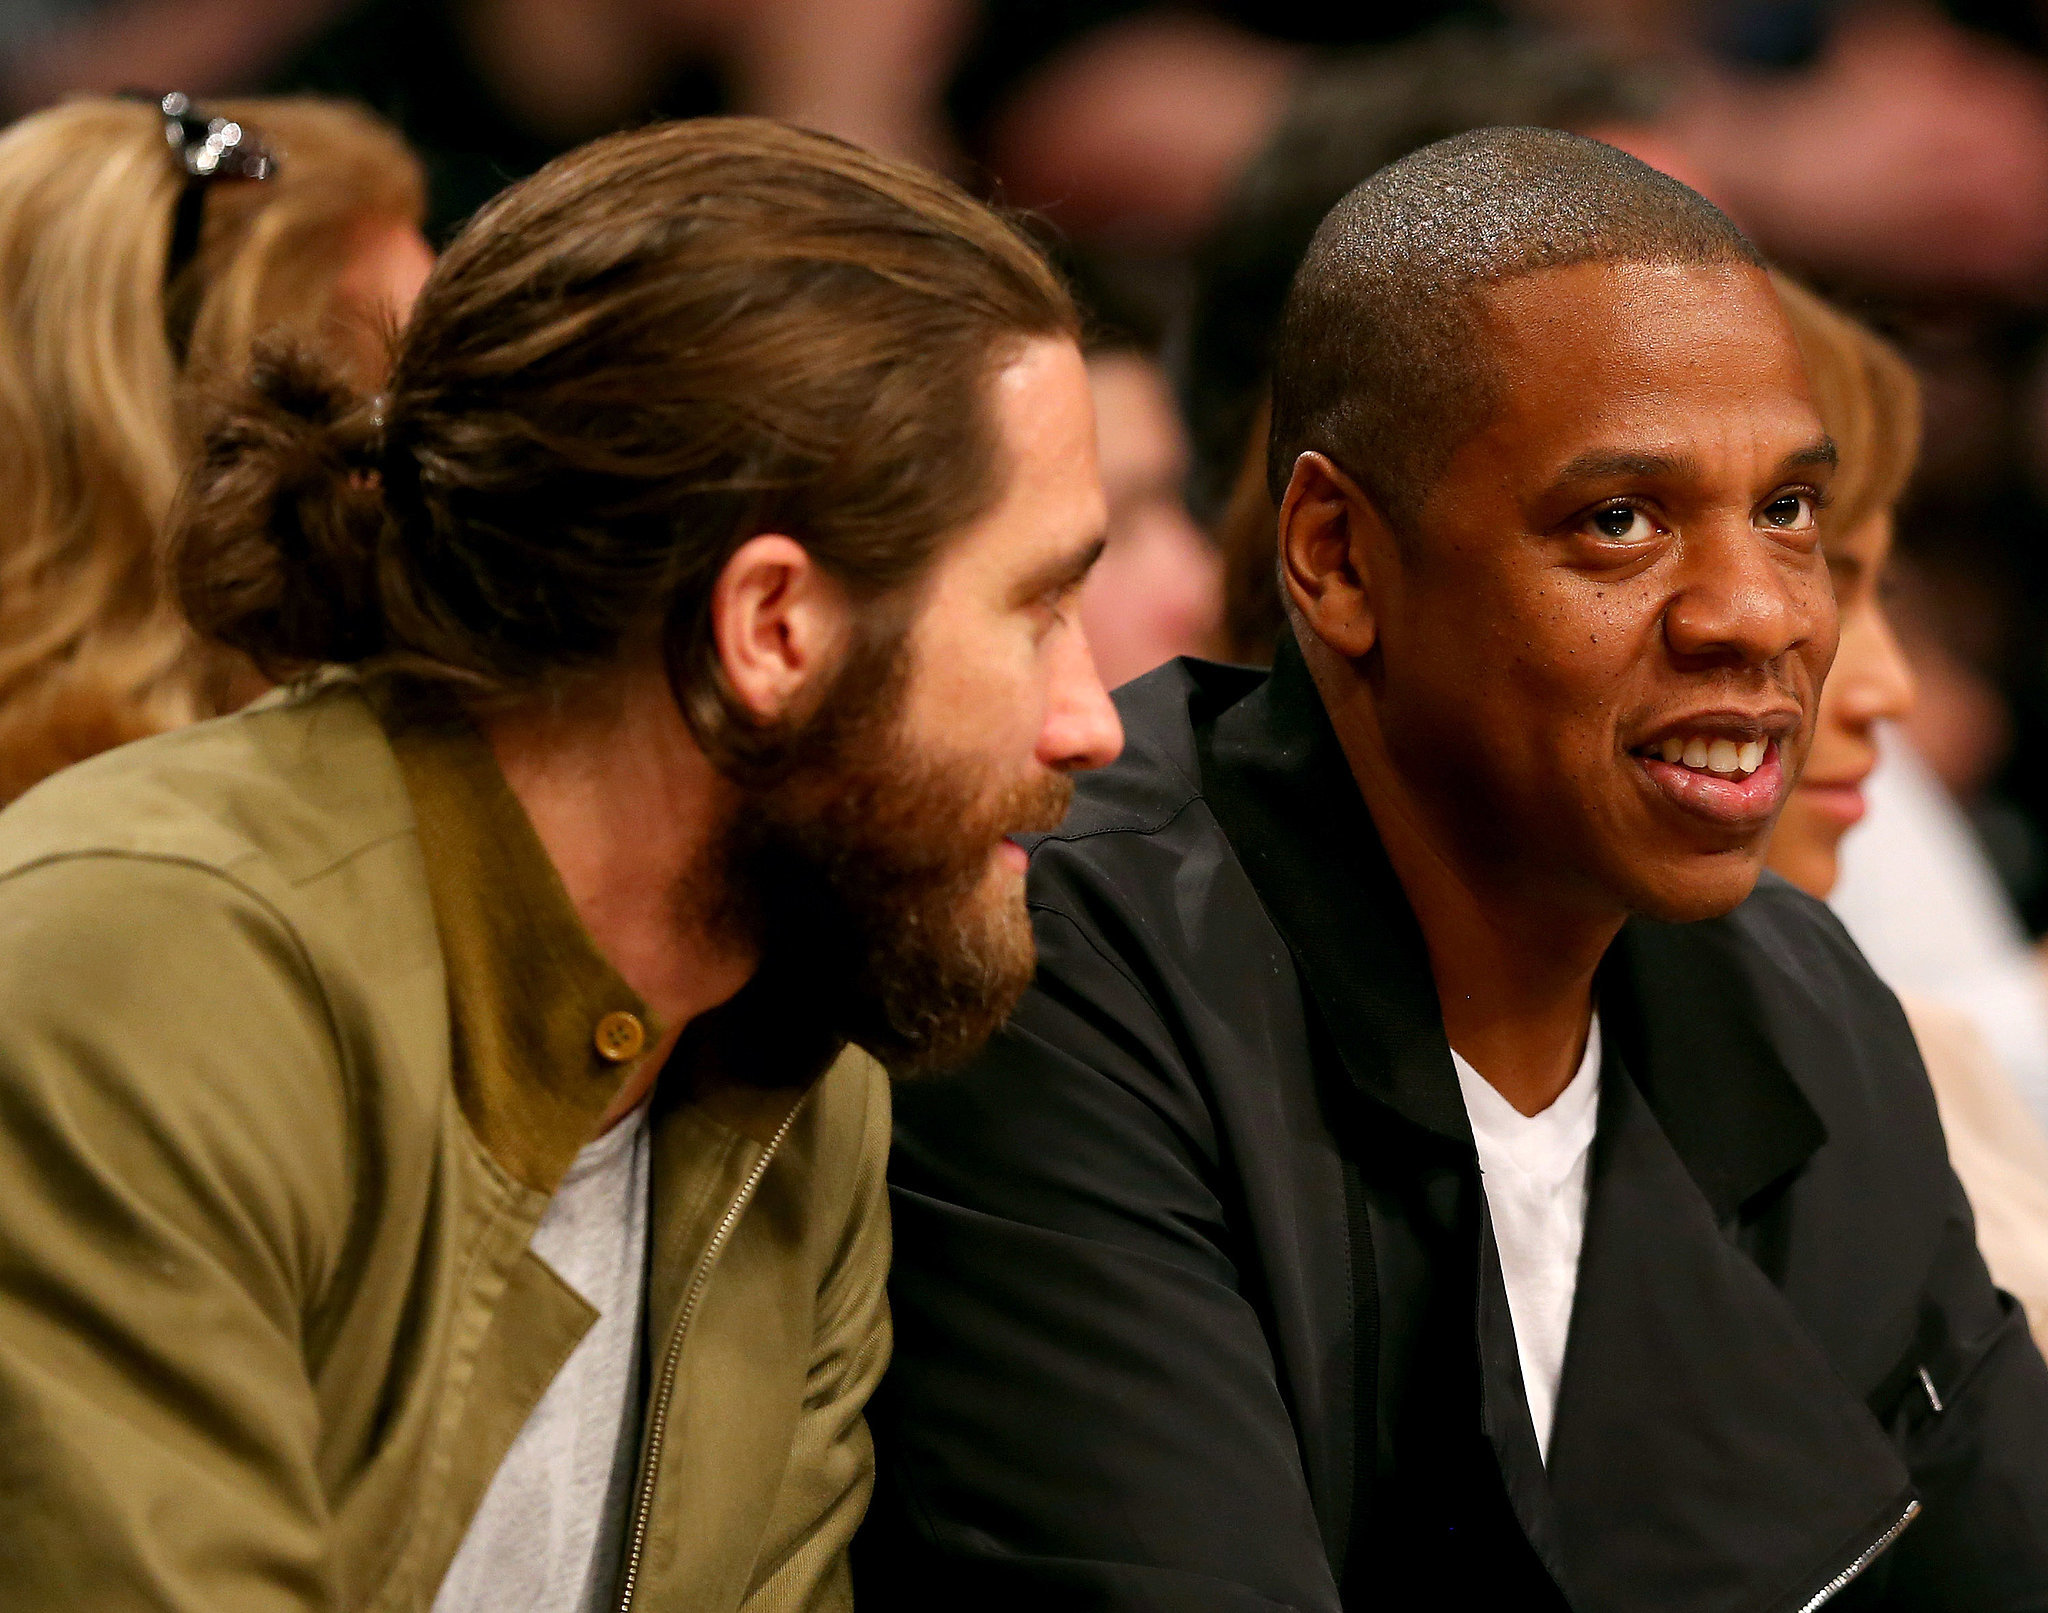 What Are Beyoncé, Jay Z, and Jake Gyllenhaal Talking About?